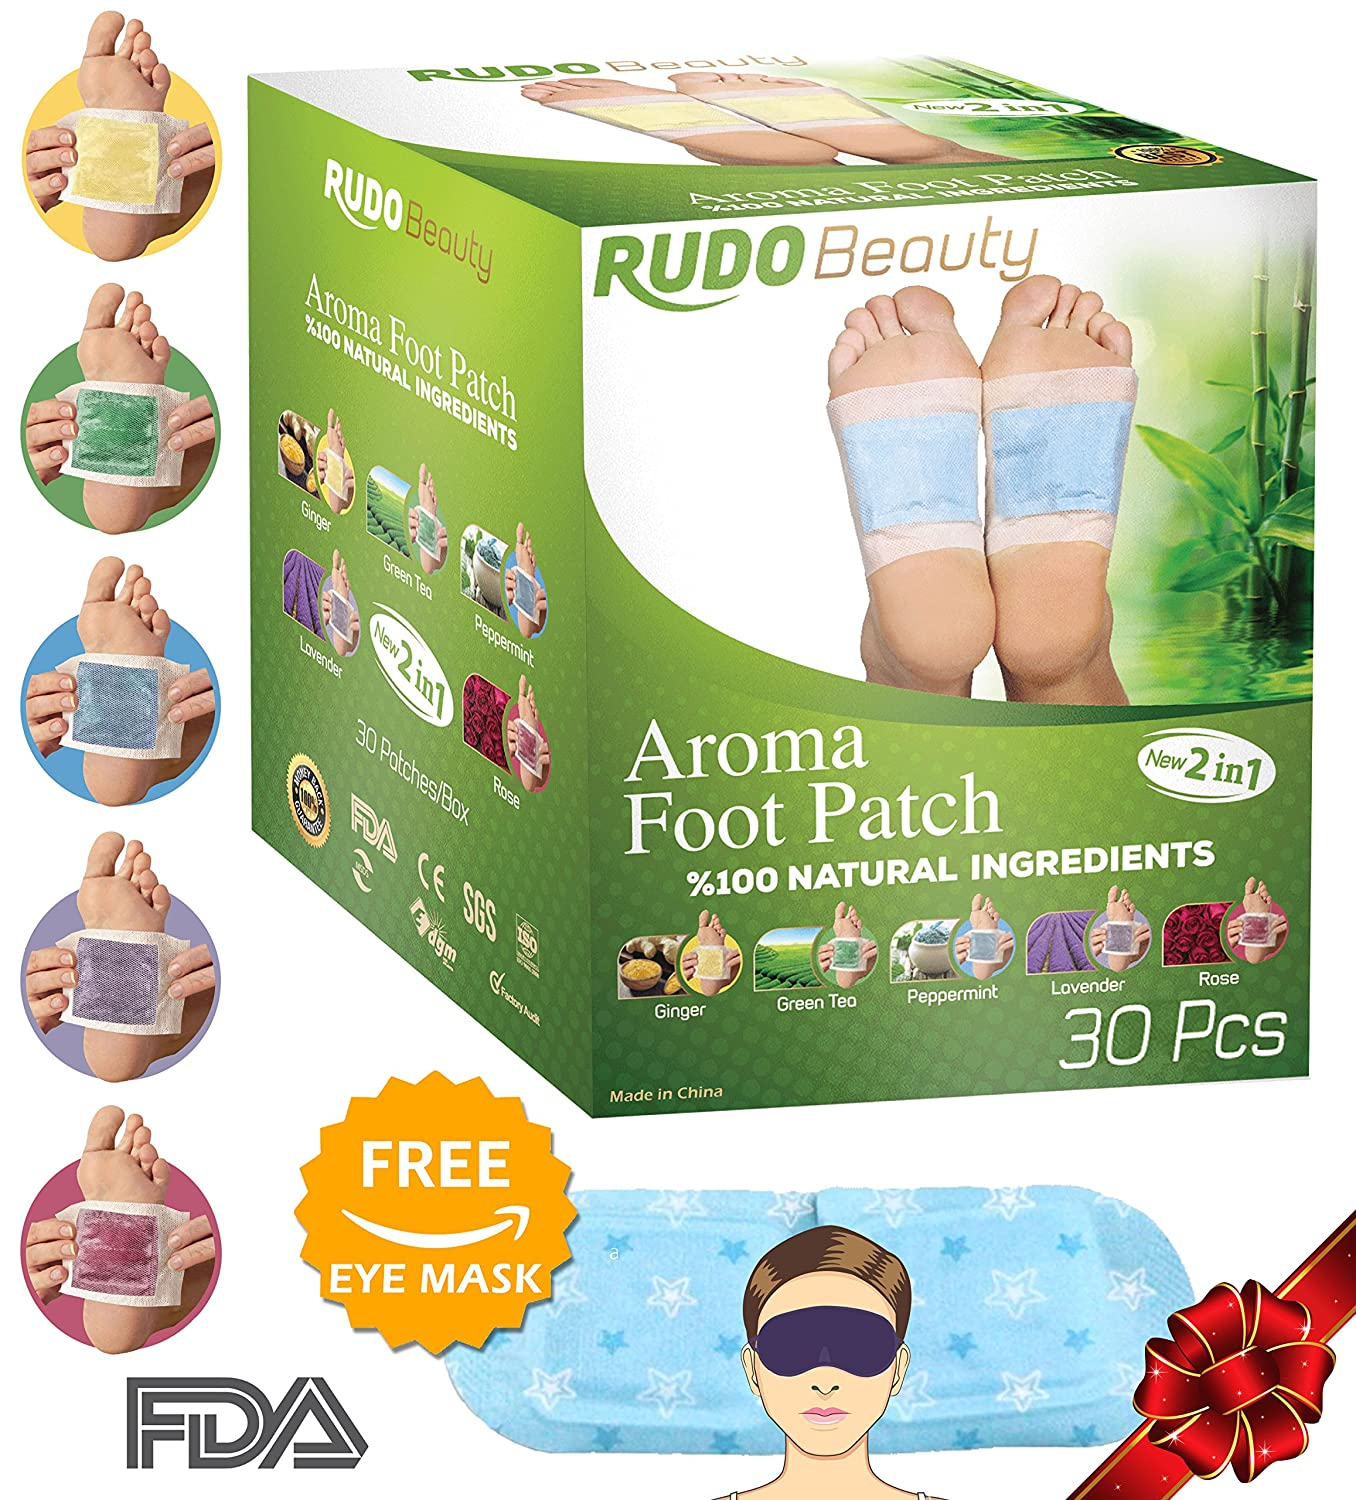 Rudo Beauty Foot Pads Aromatherapy Pain Relief Fda 10 Box Kinoki Gold Ginger Certified 30 Pack Improved 2in1 And Body Patches Remove Toxins Health Personal